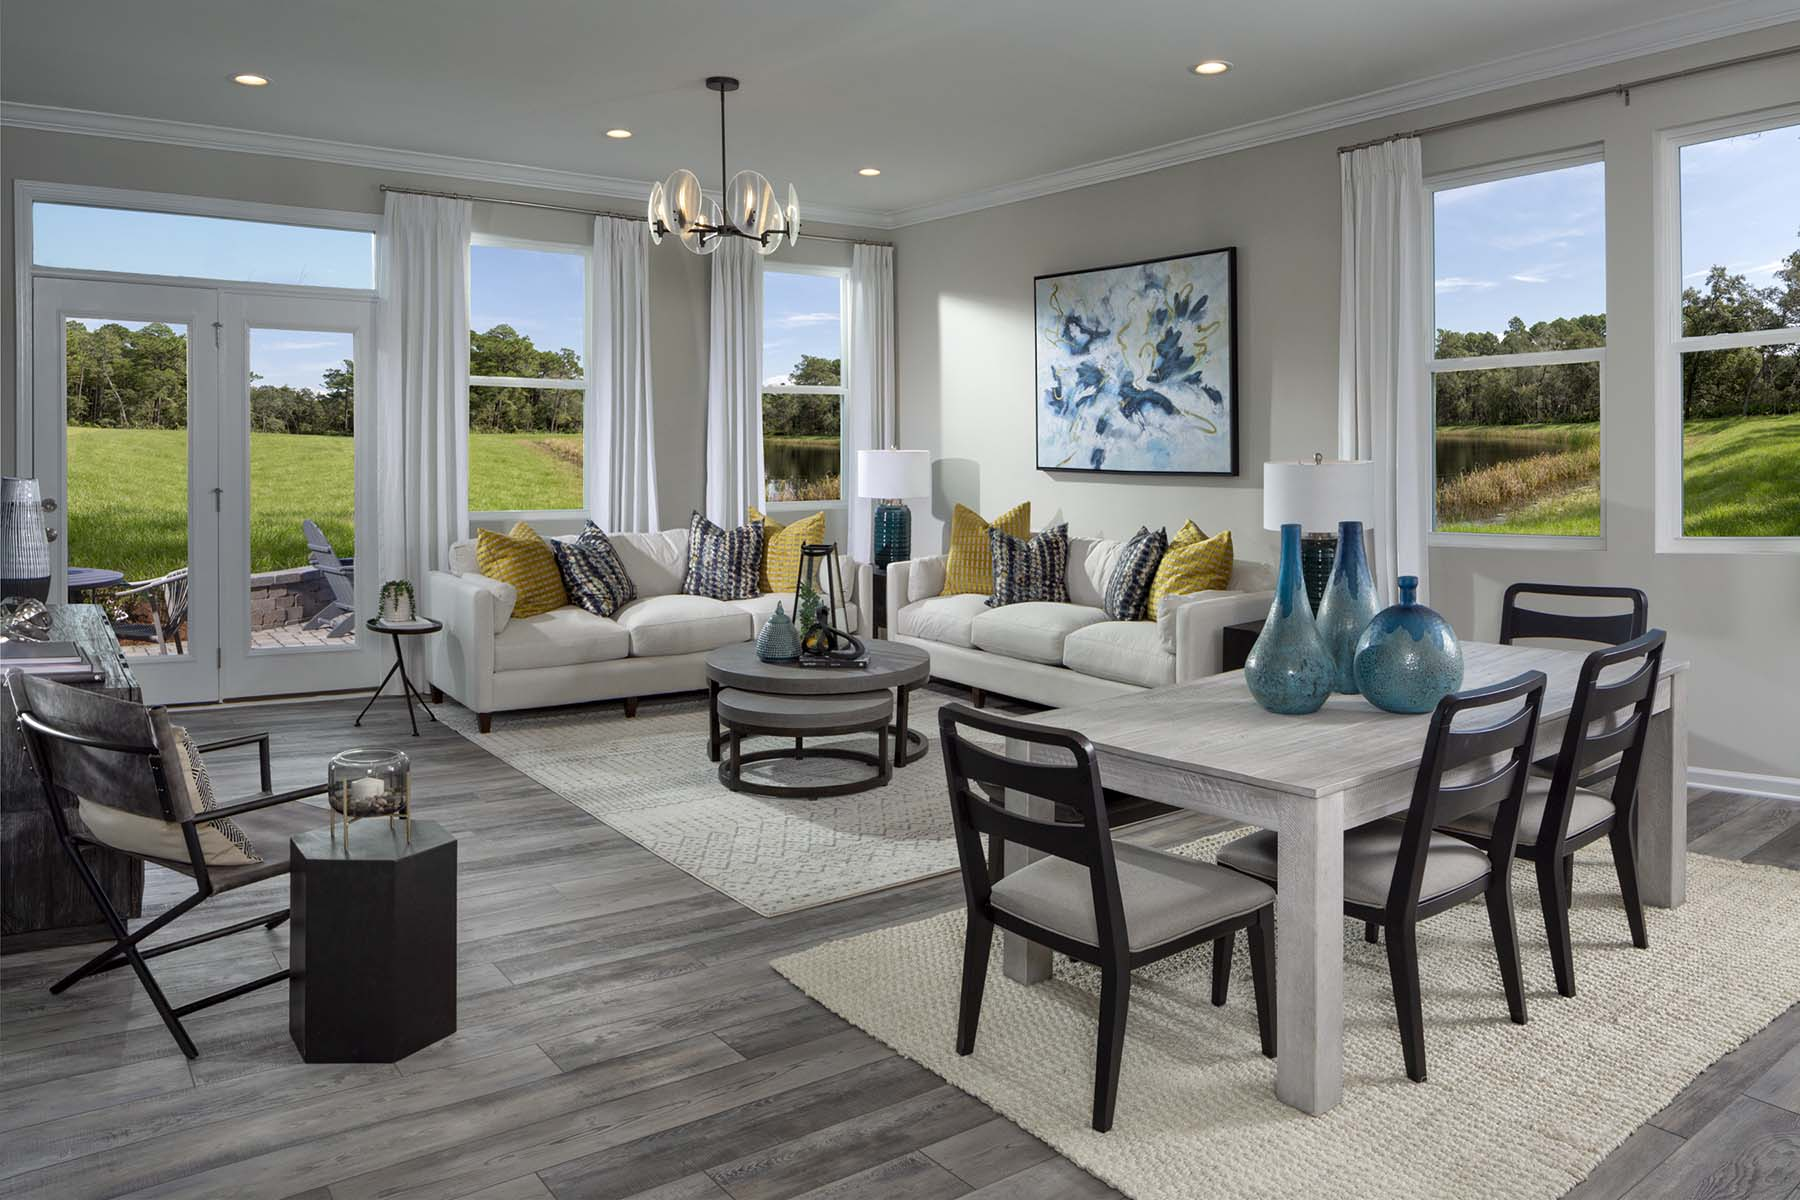 Braeburn Greatroom in Indian Trail North Carolina by Mattamy Homes